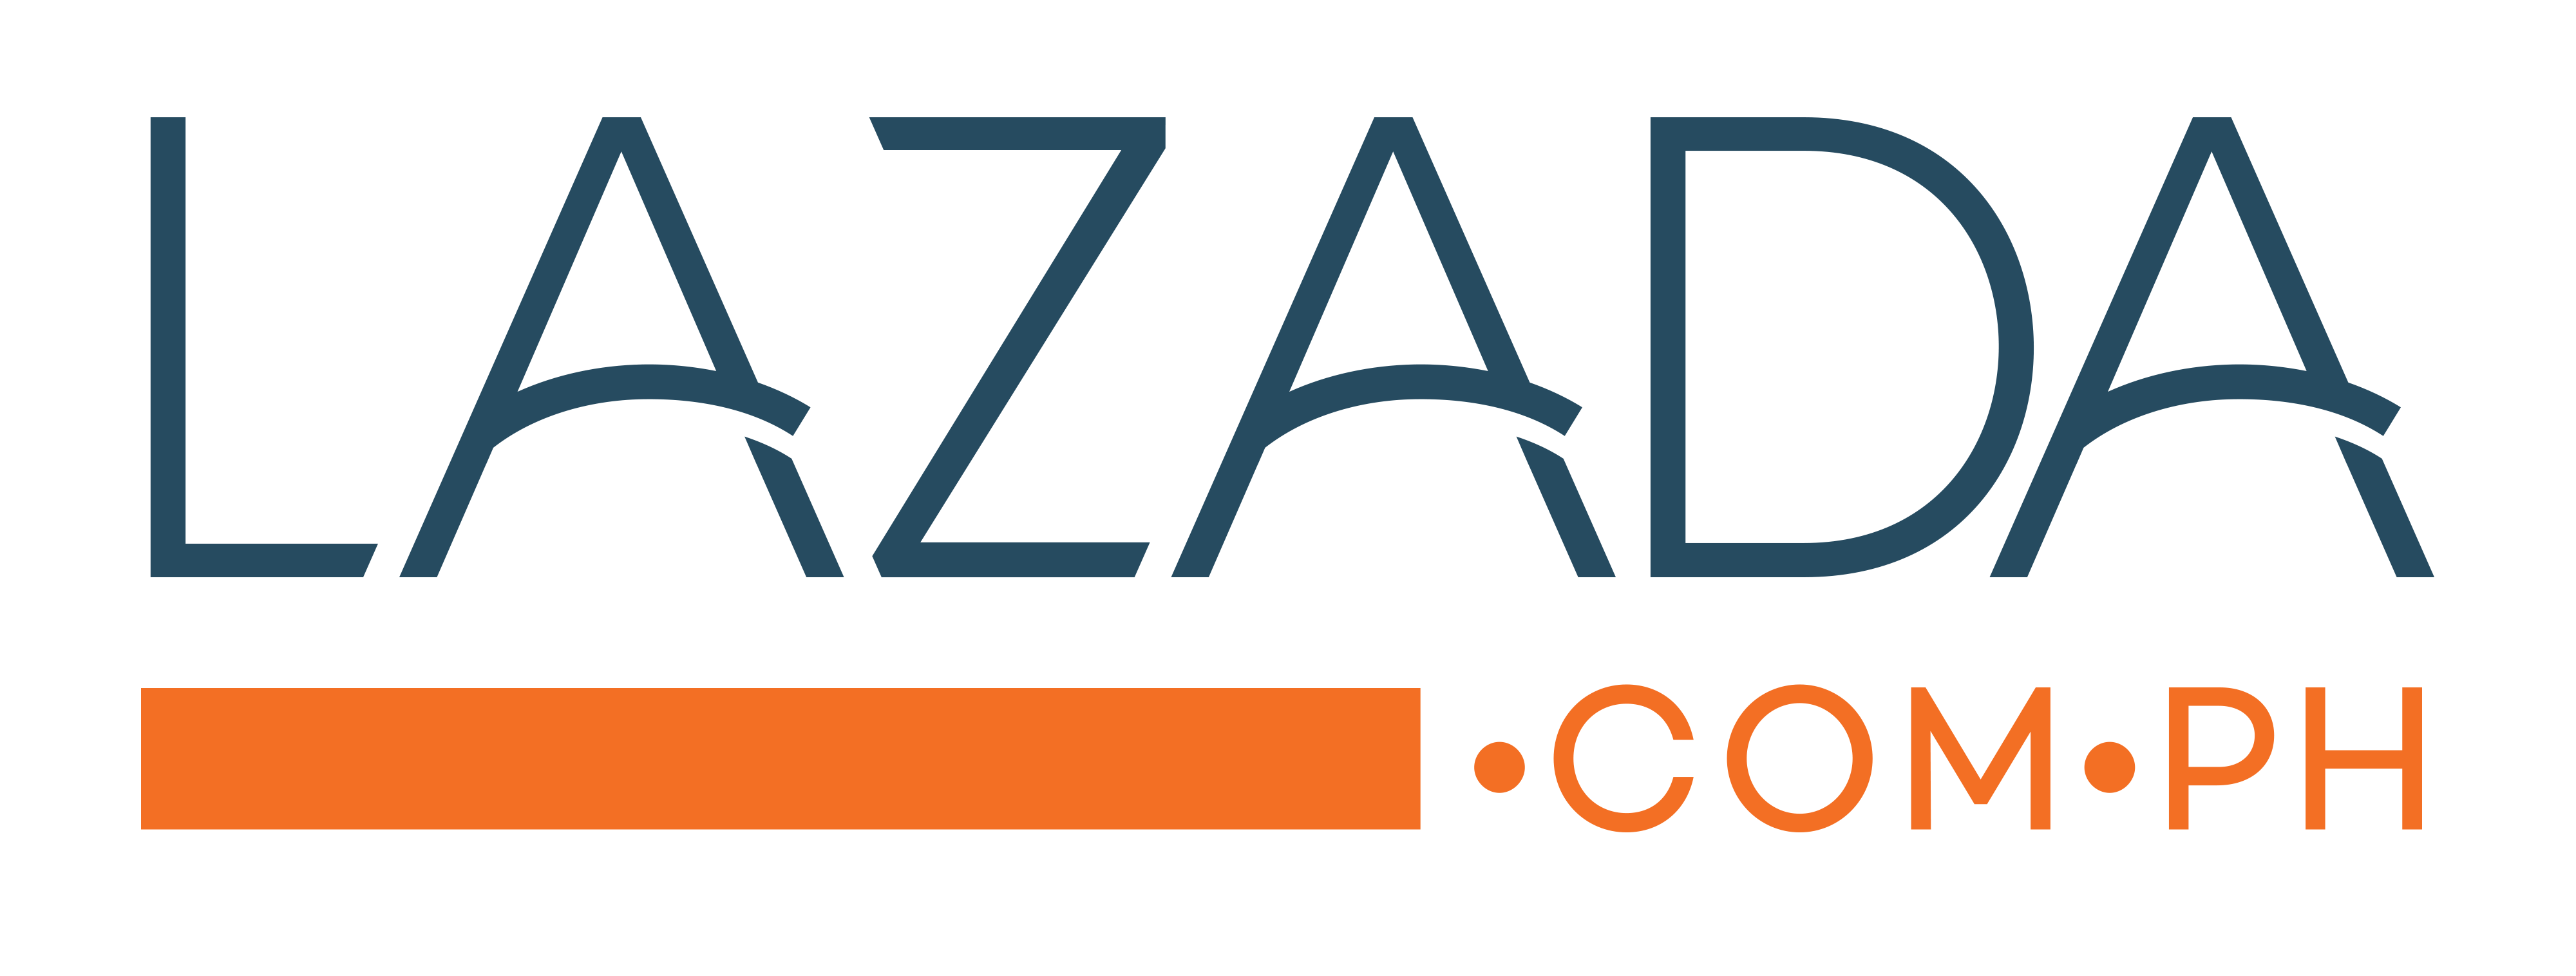 Work From Home Office Lazada Philippines Careers Job Hiring Amp Openings Kalibrr